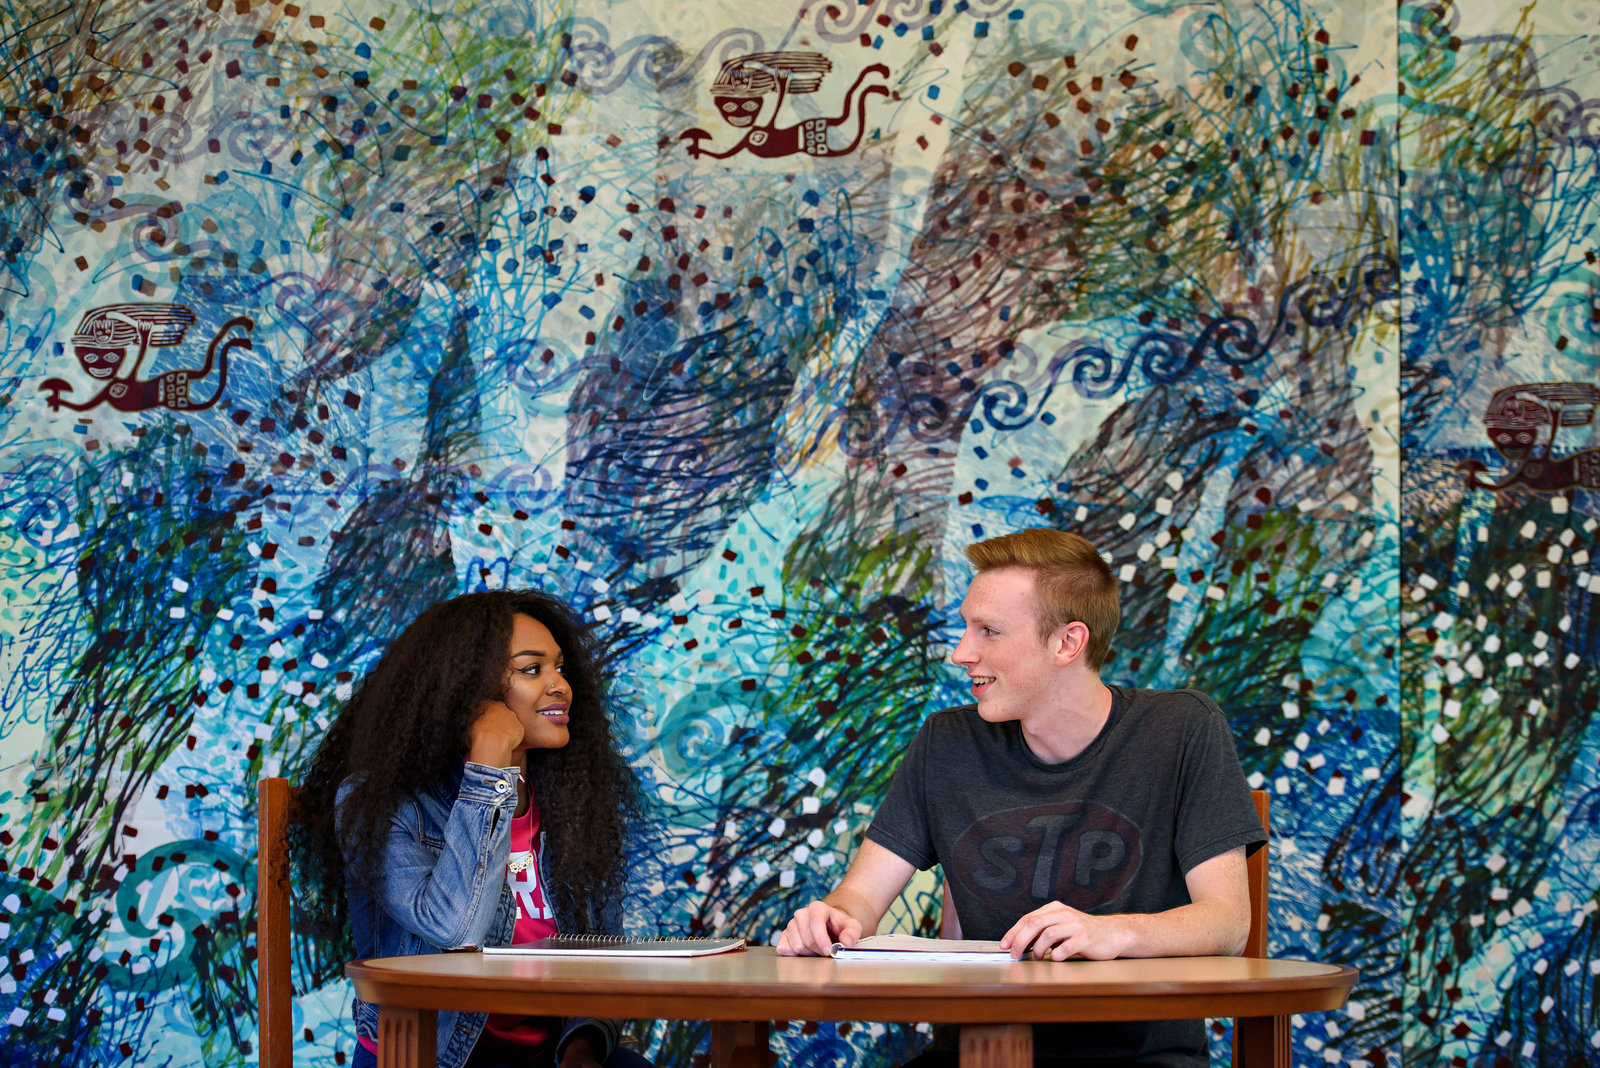 A study session between two students in front of a large painting in a college library.